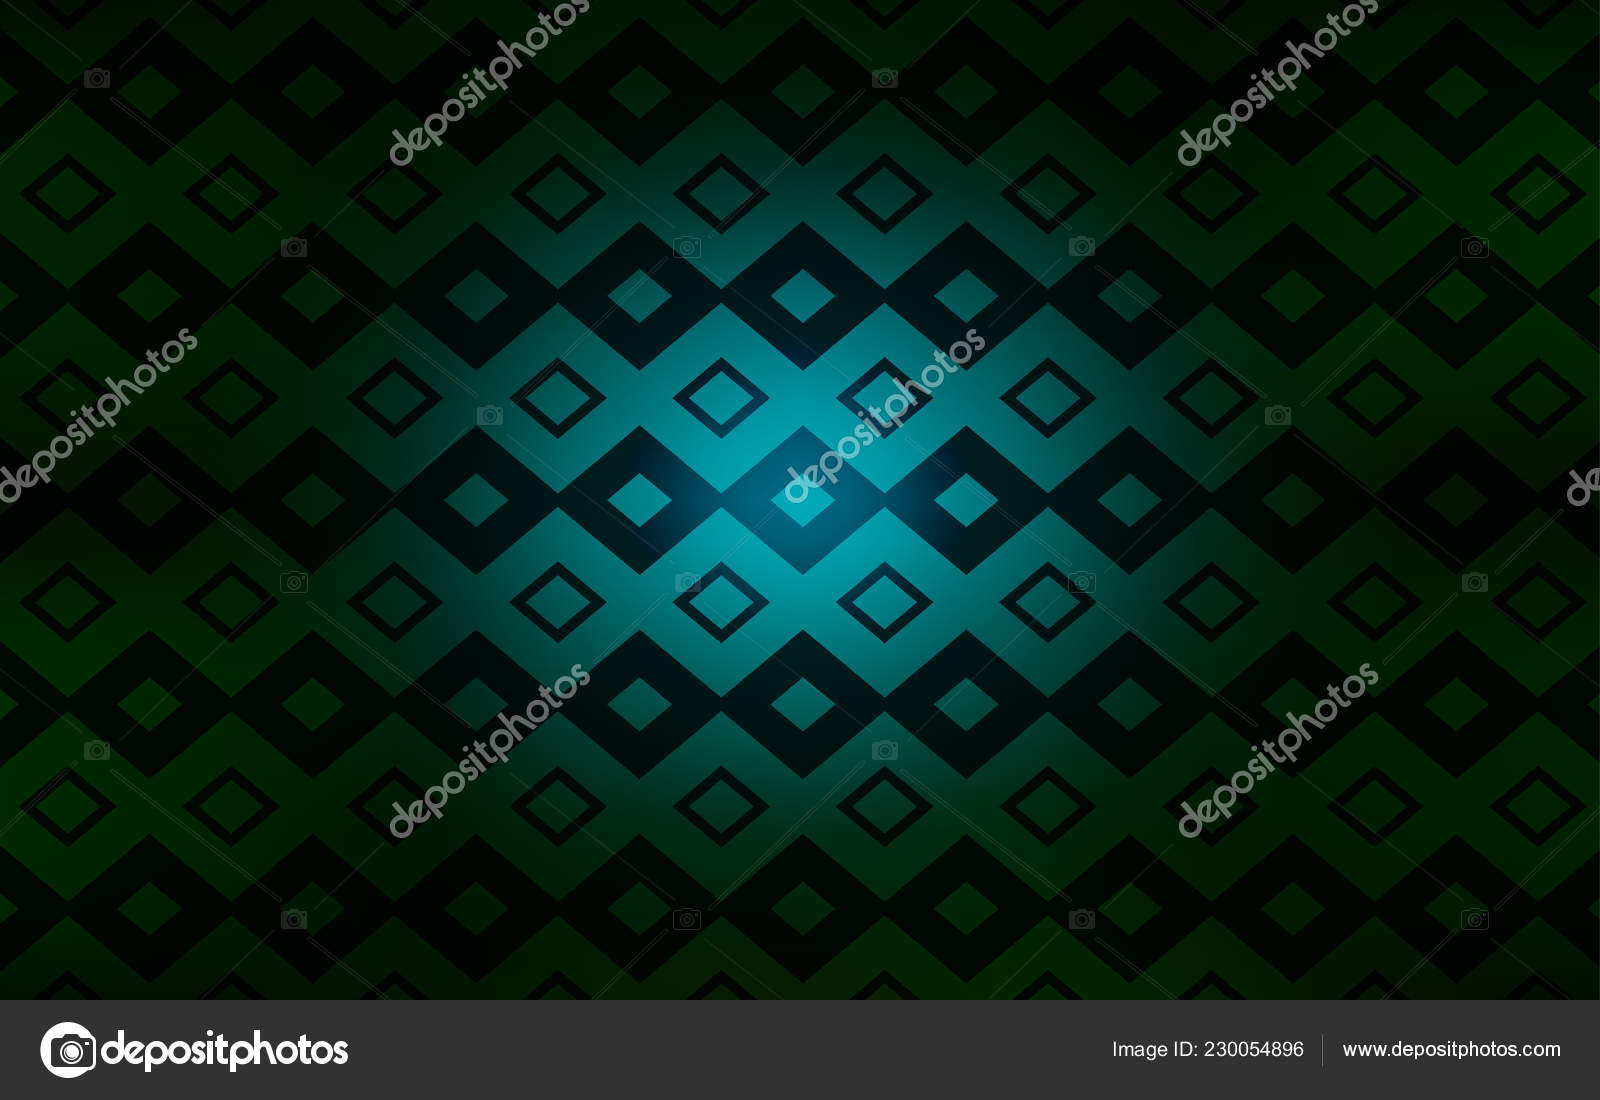 Dark Green Vector Background Rectangles Rectangles Abstract